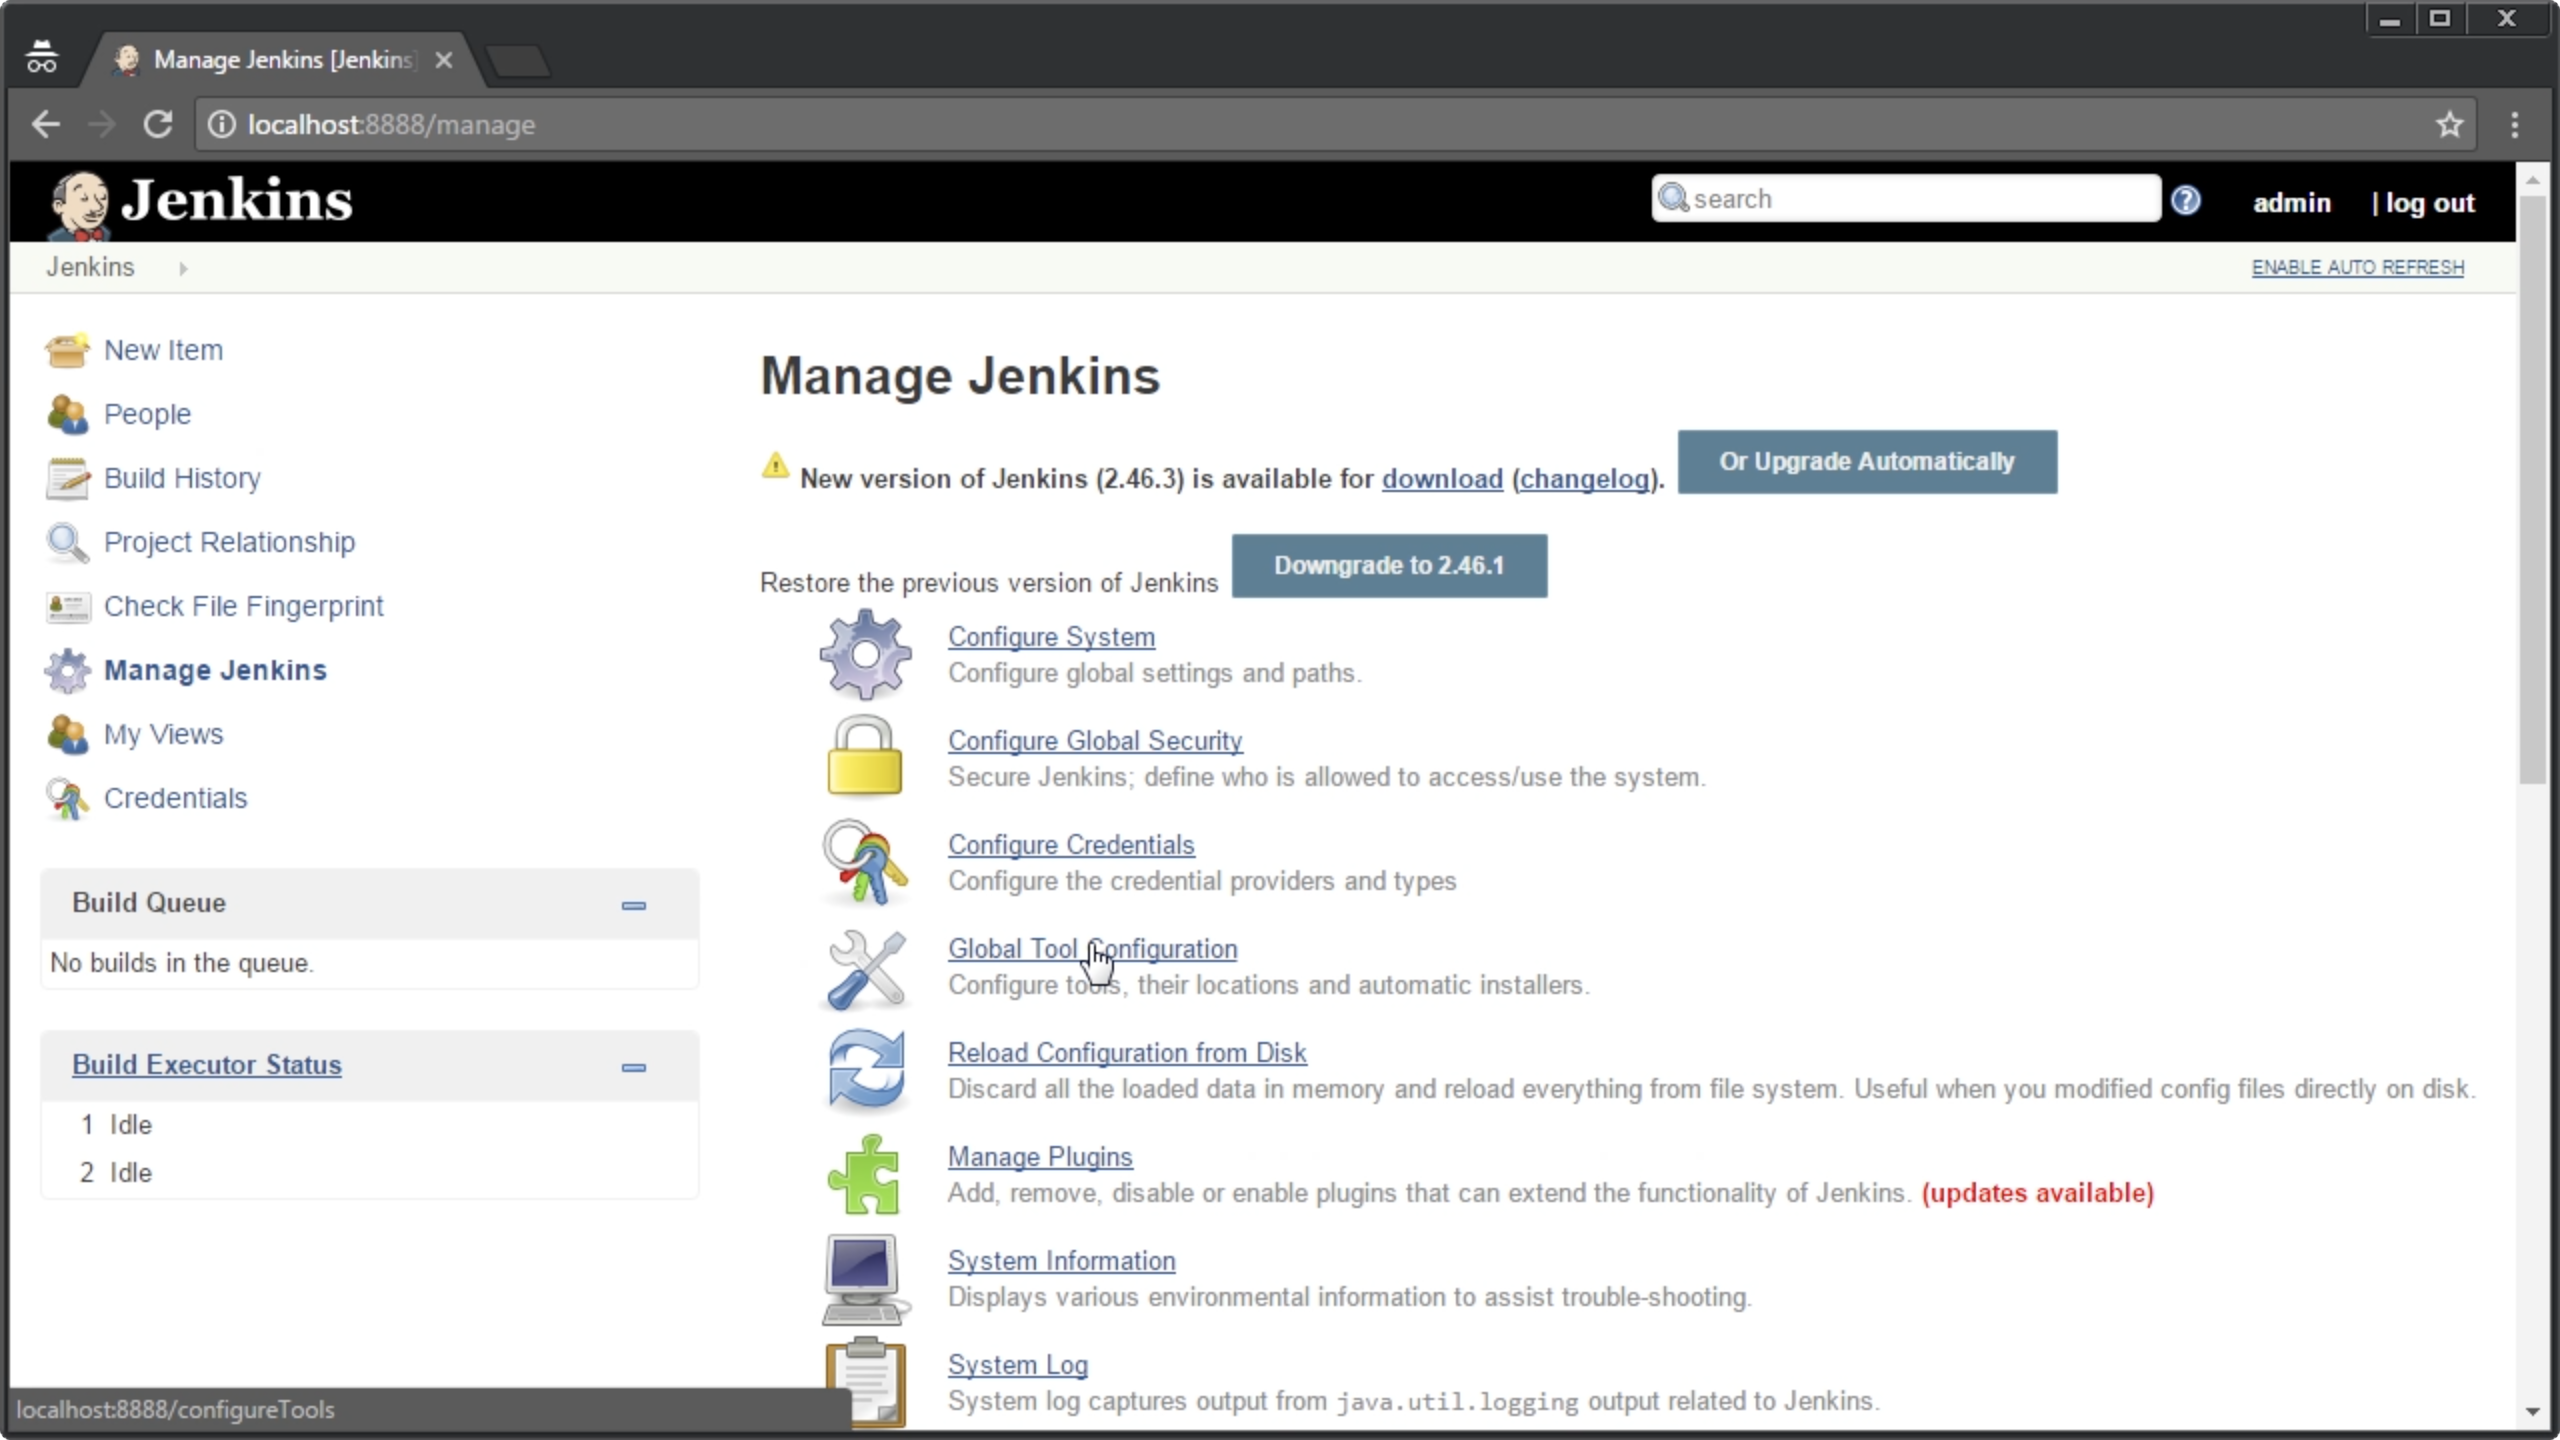 How do I integrate Ant with Jenkins?